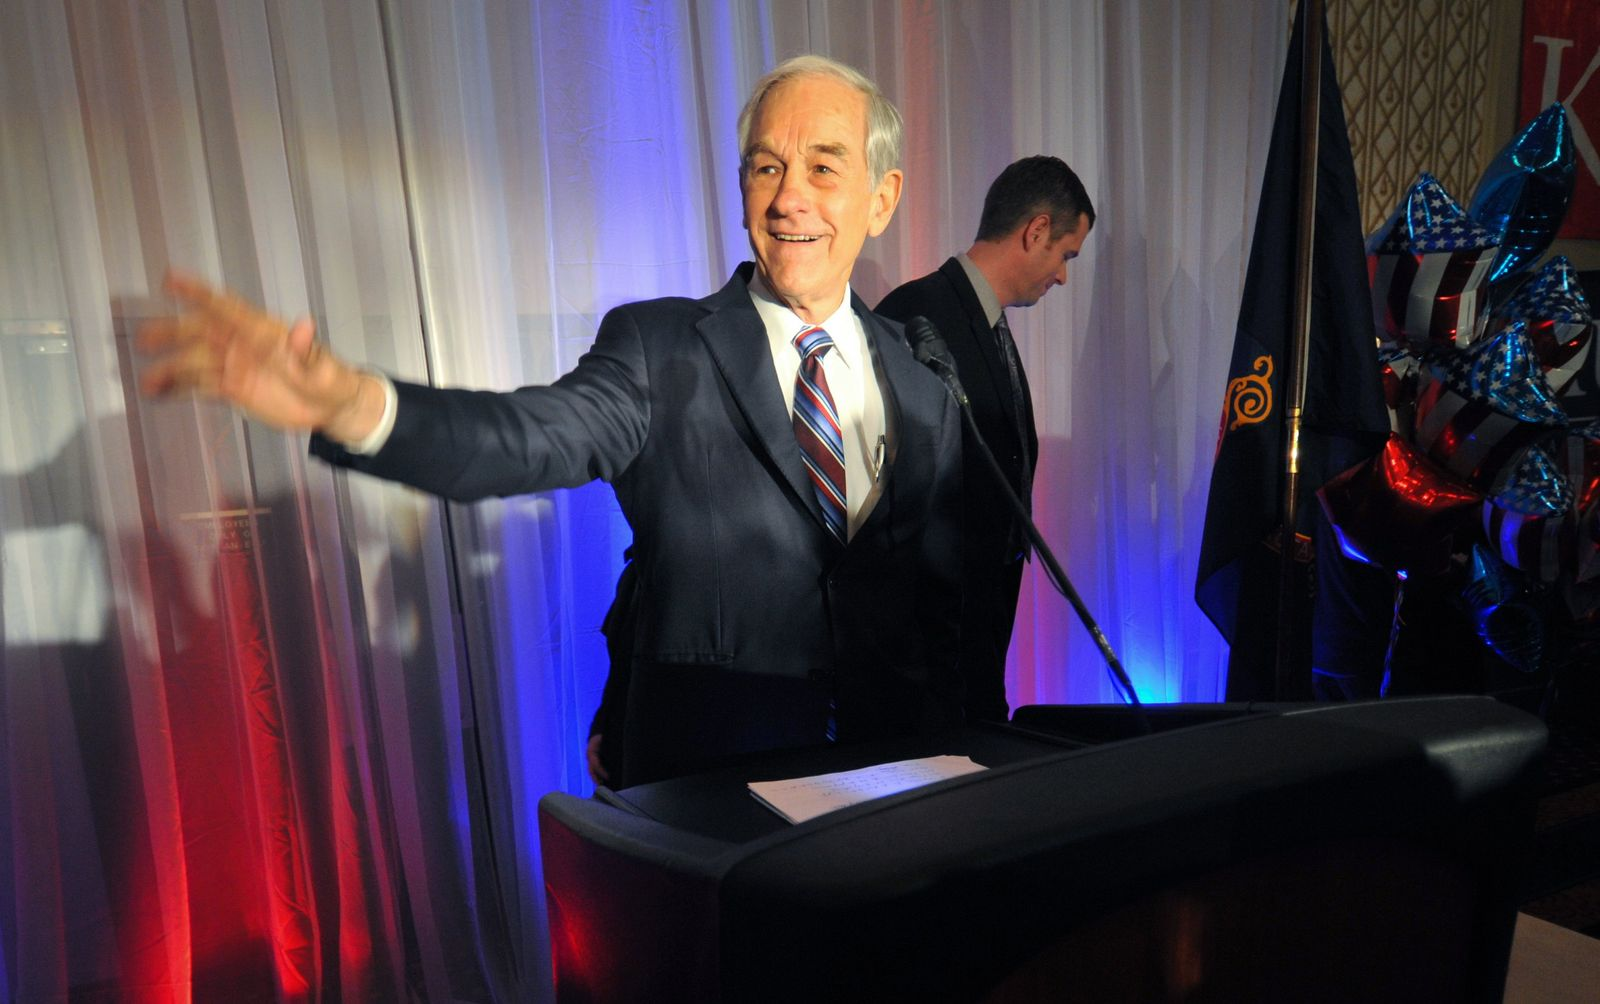 Biga Super Tuesday Ron Paul